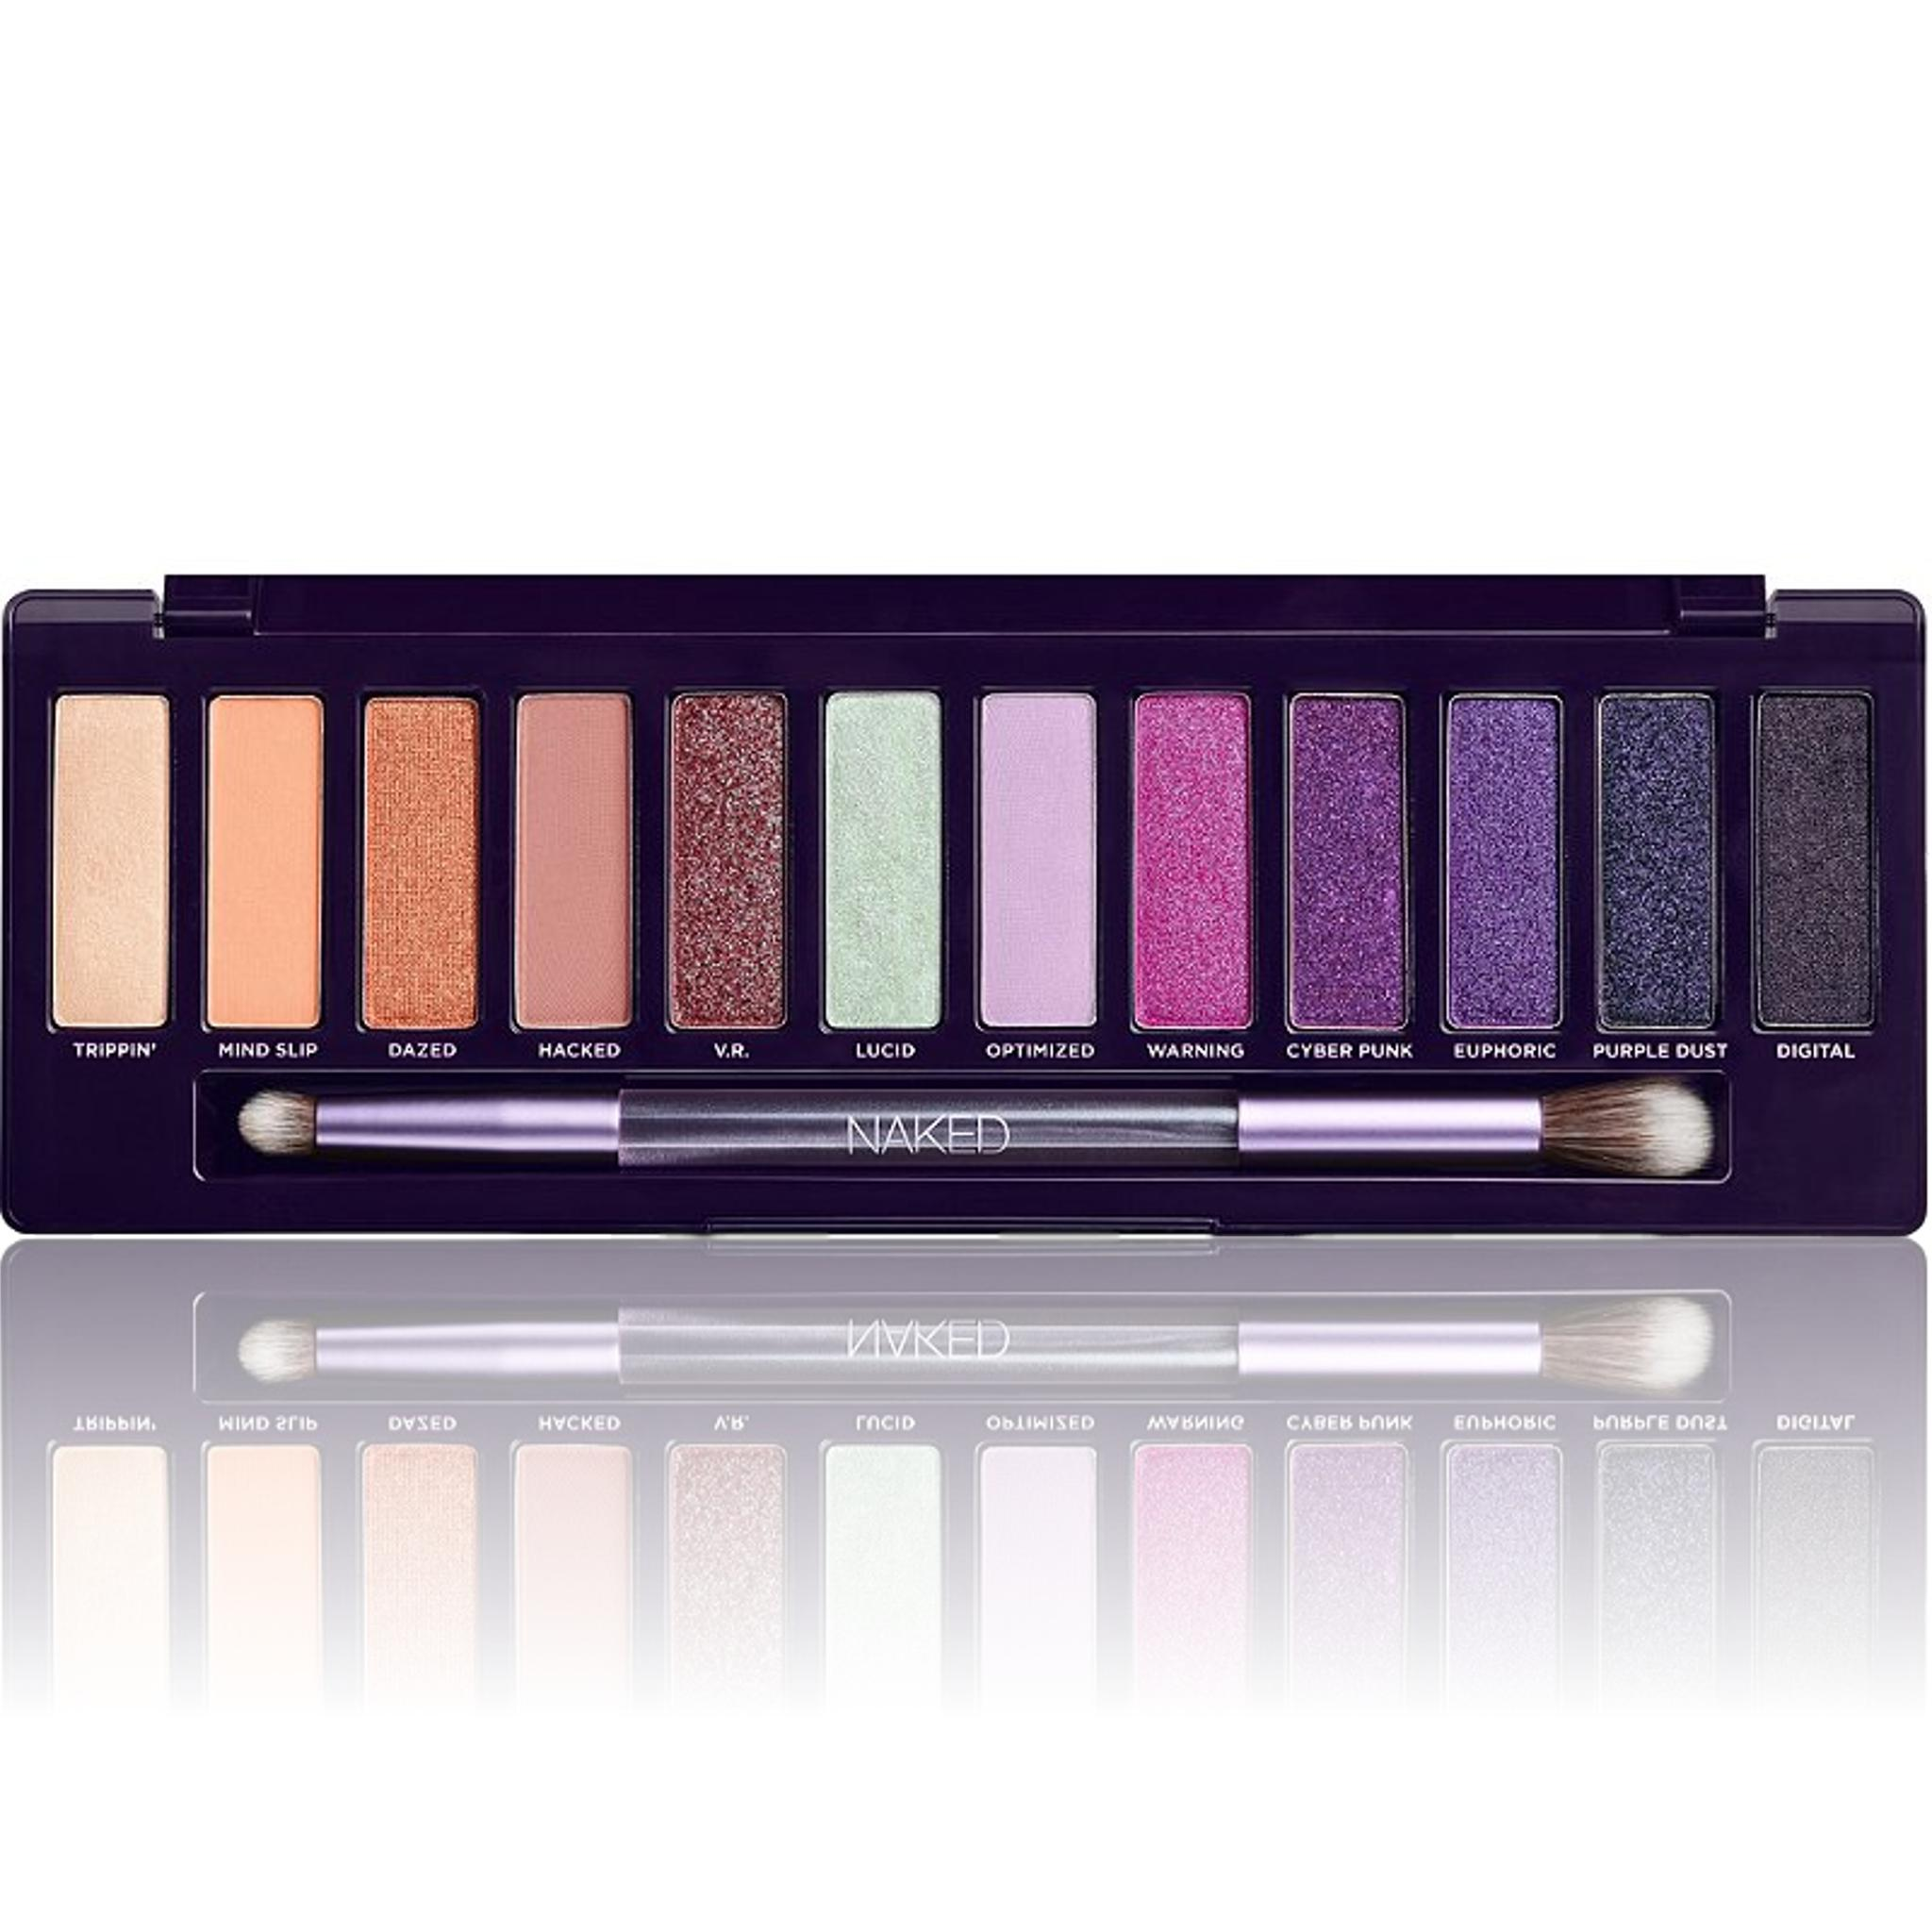 Urban Decay Naked Ultra Violet Palette, eyeshadow palette, London Loves Beauty